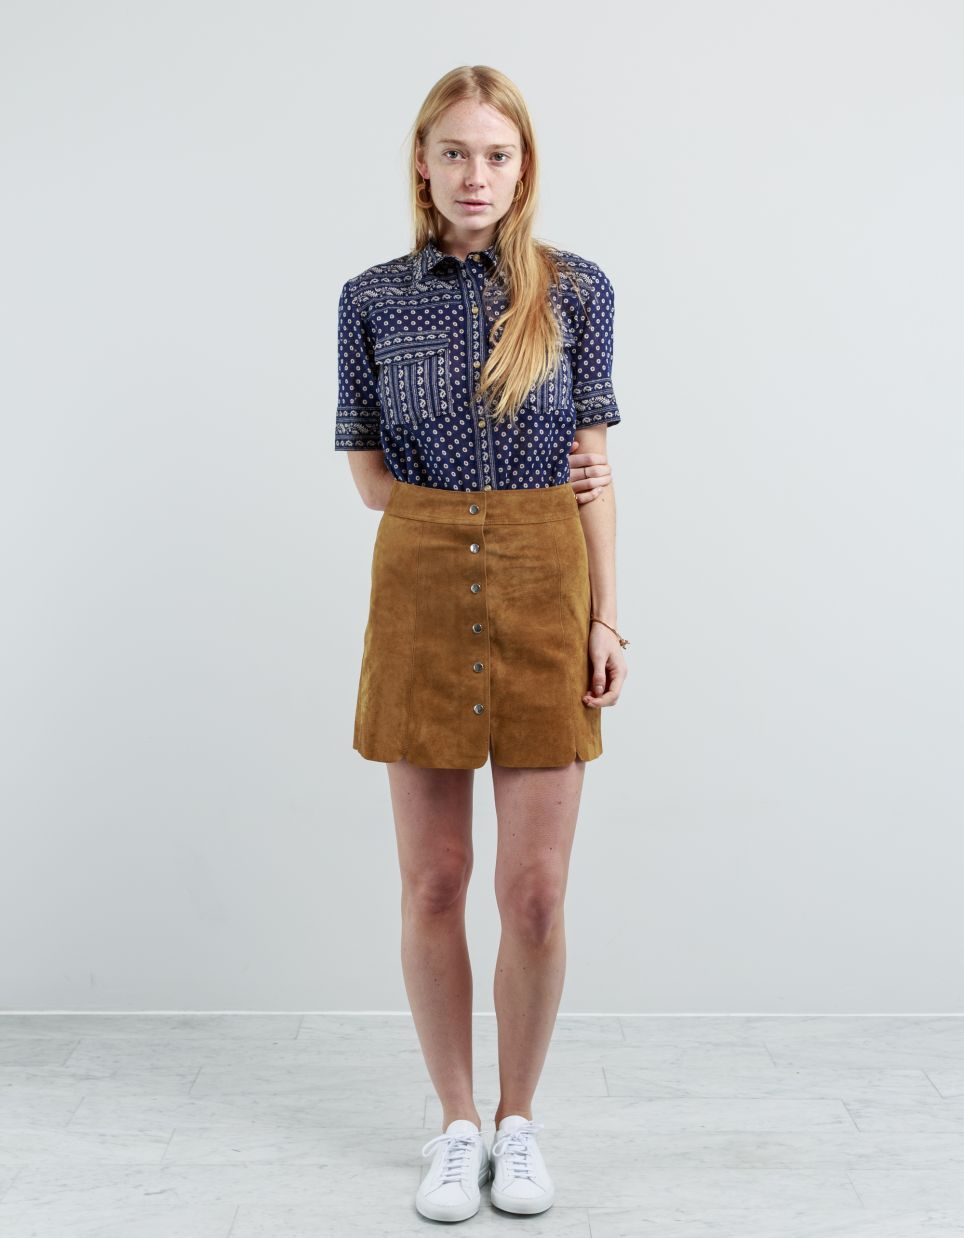 737bf90cc4 Isabel Marant Étoile Anna Suede Skirt - Nitty Gritty Store | Young ...